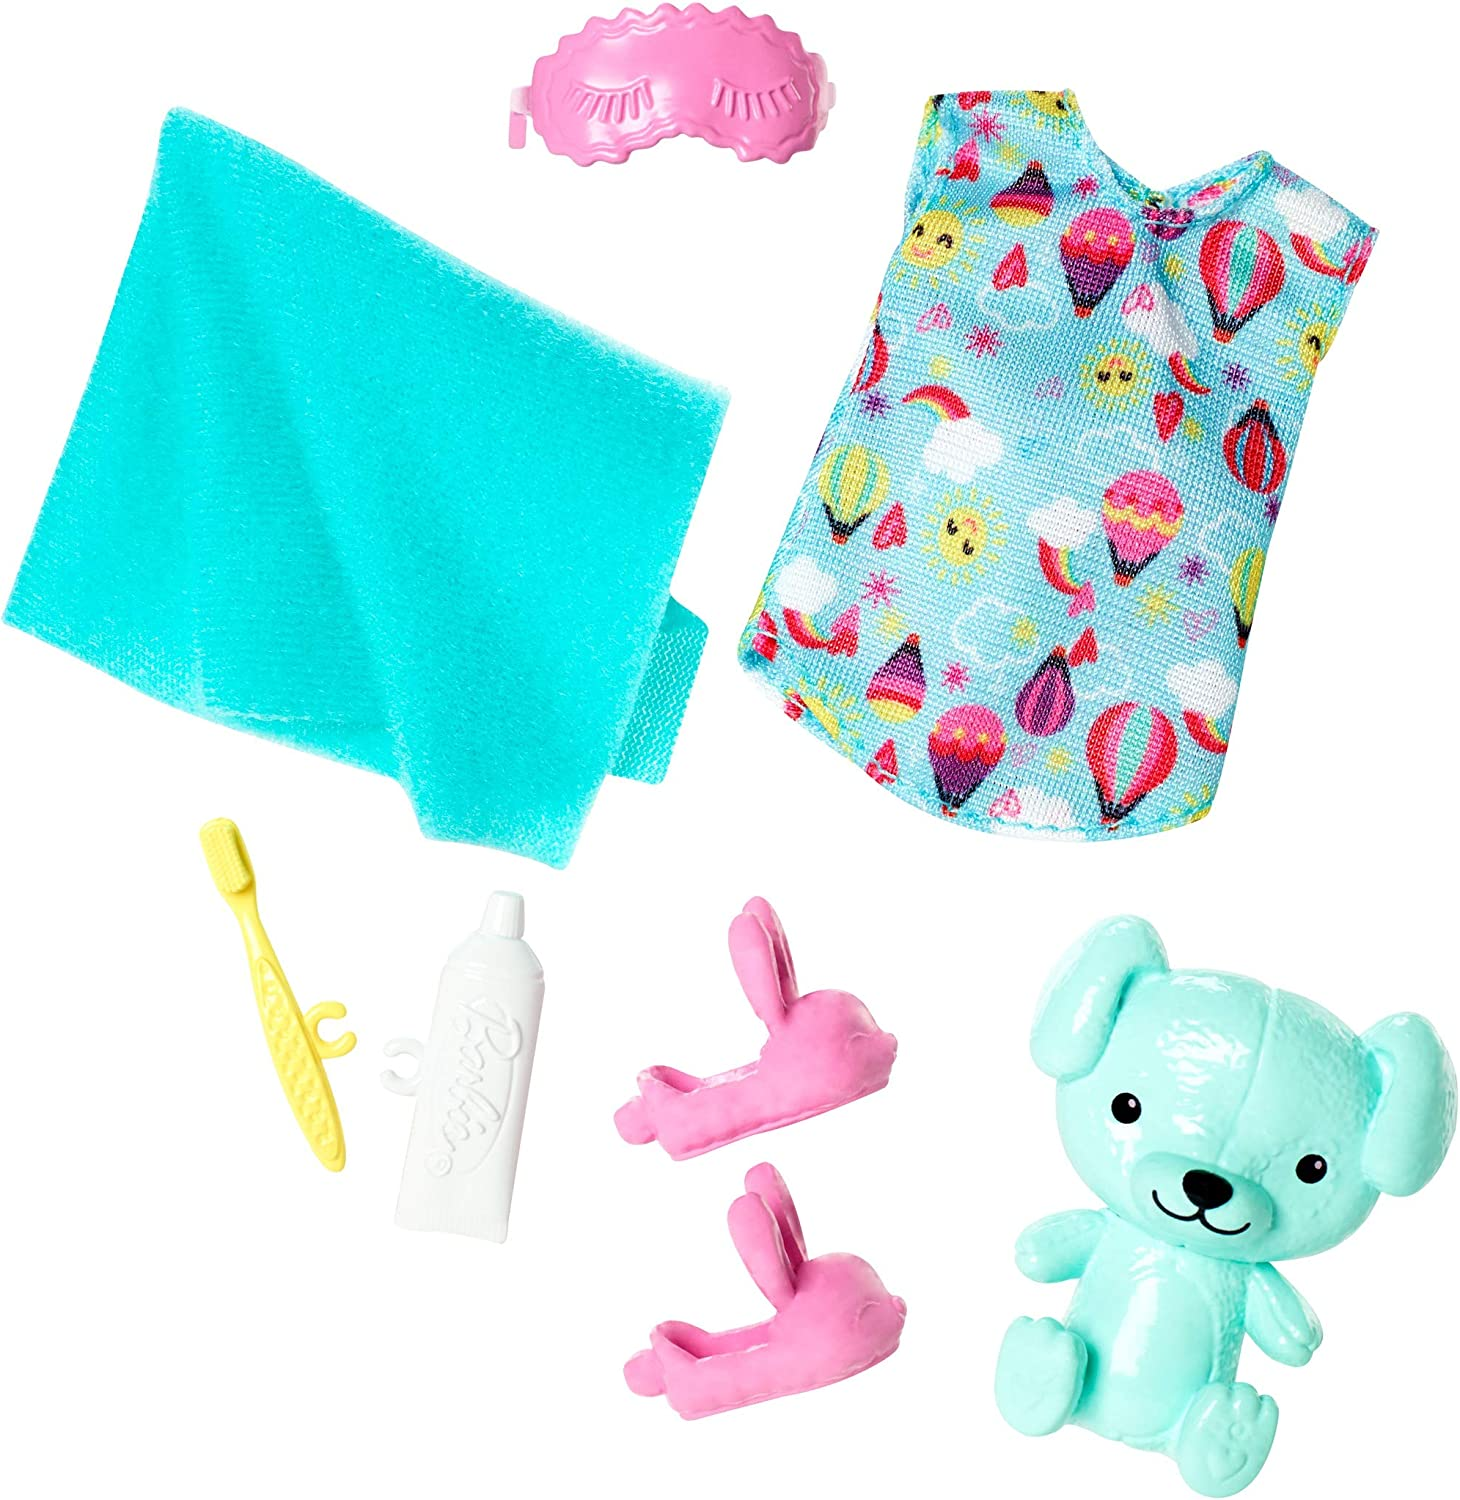 Barbie Club Chelsea Accessory Pack, Bedtime-Themed Clothing and Accessories for Small Dolls, 7 Pieces for 3 to 7 Year Olds Include Teddy Bear